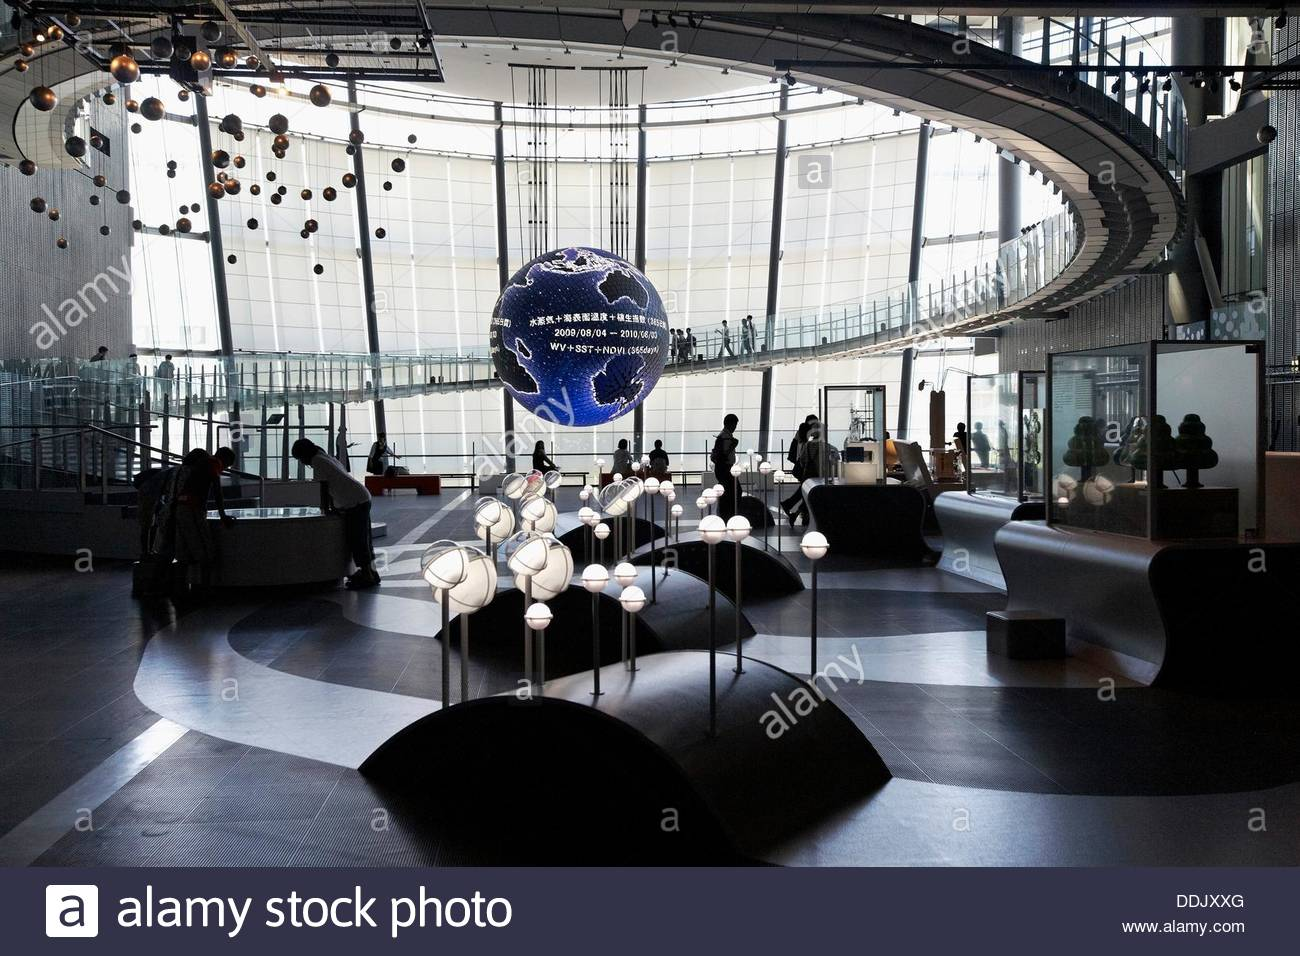 Baseball Hall of Fame & Museum Tokyo, Symbol Exhibit Geo Cosmos, Miraikan, National Museum of Emerging ...